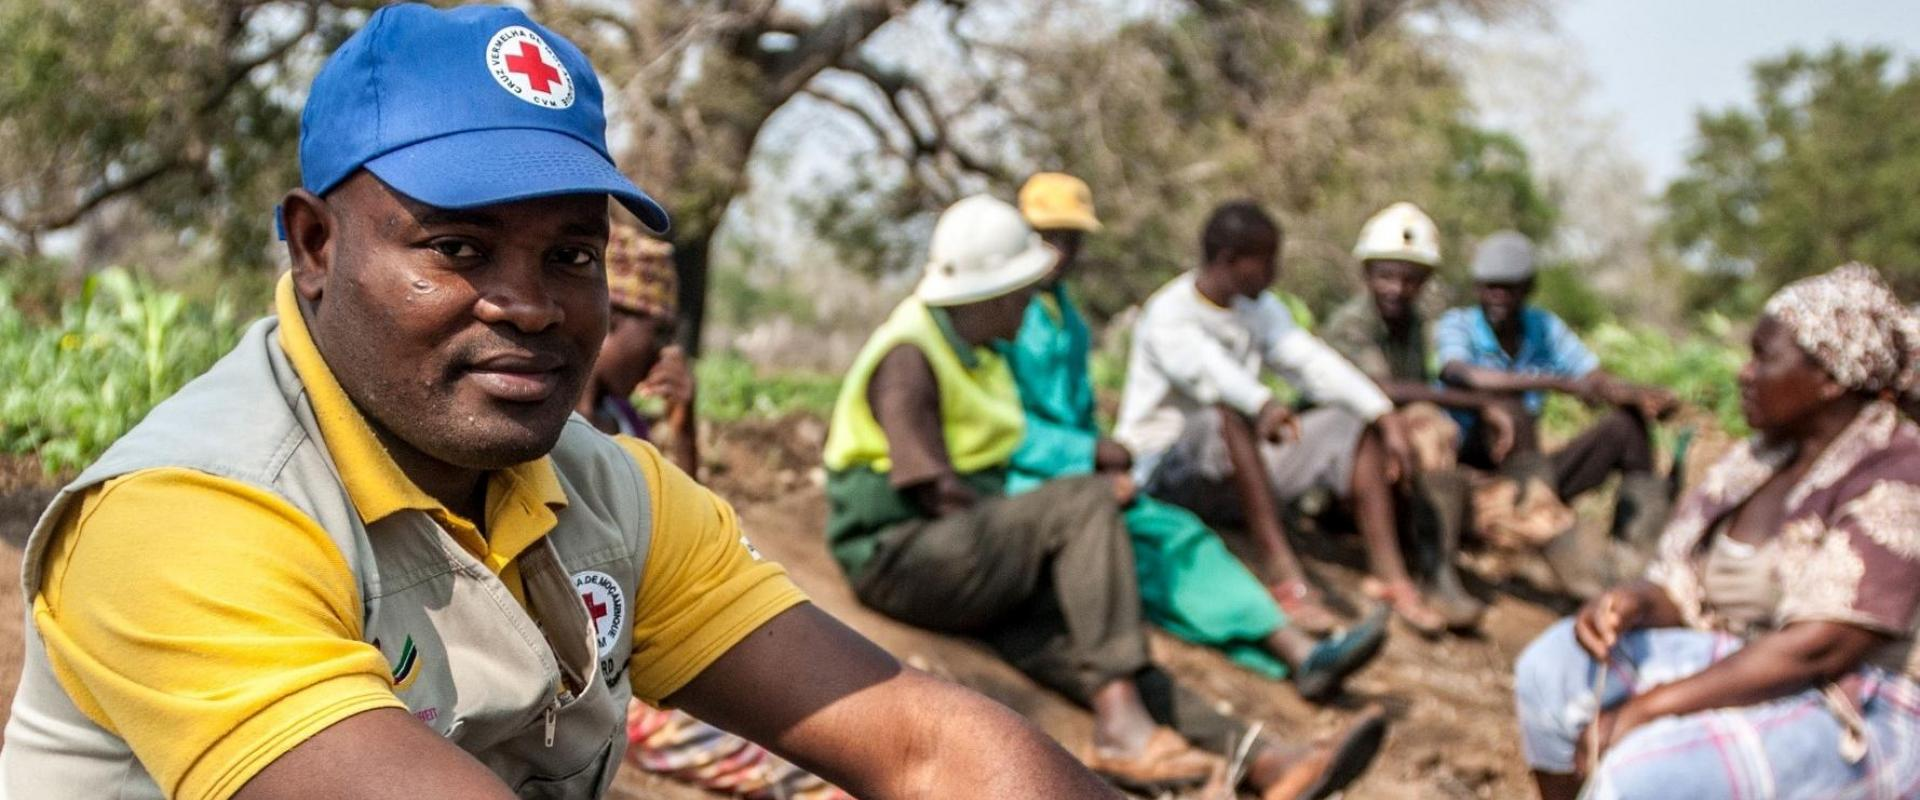 EU Aid Volunteer Organizational Development and Change Management Mozambique